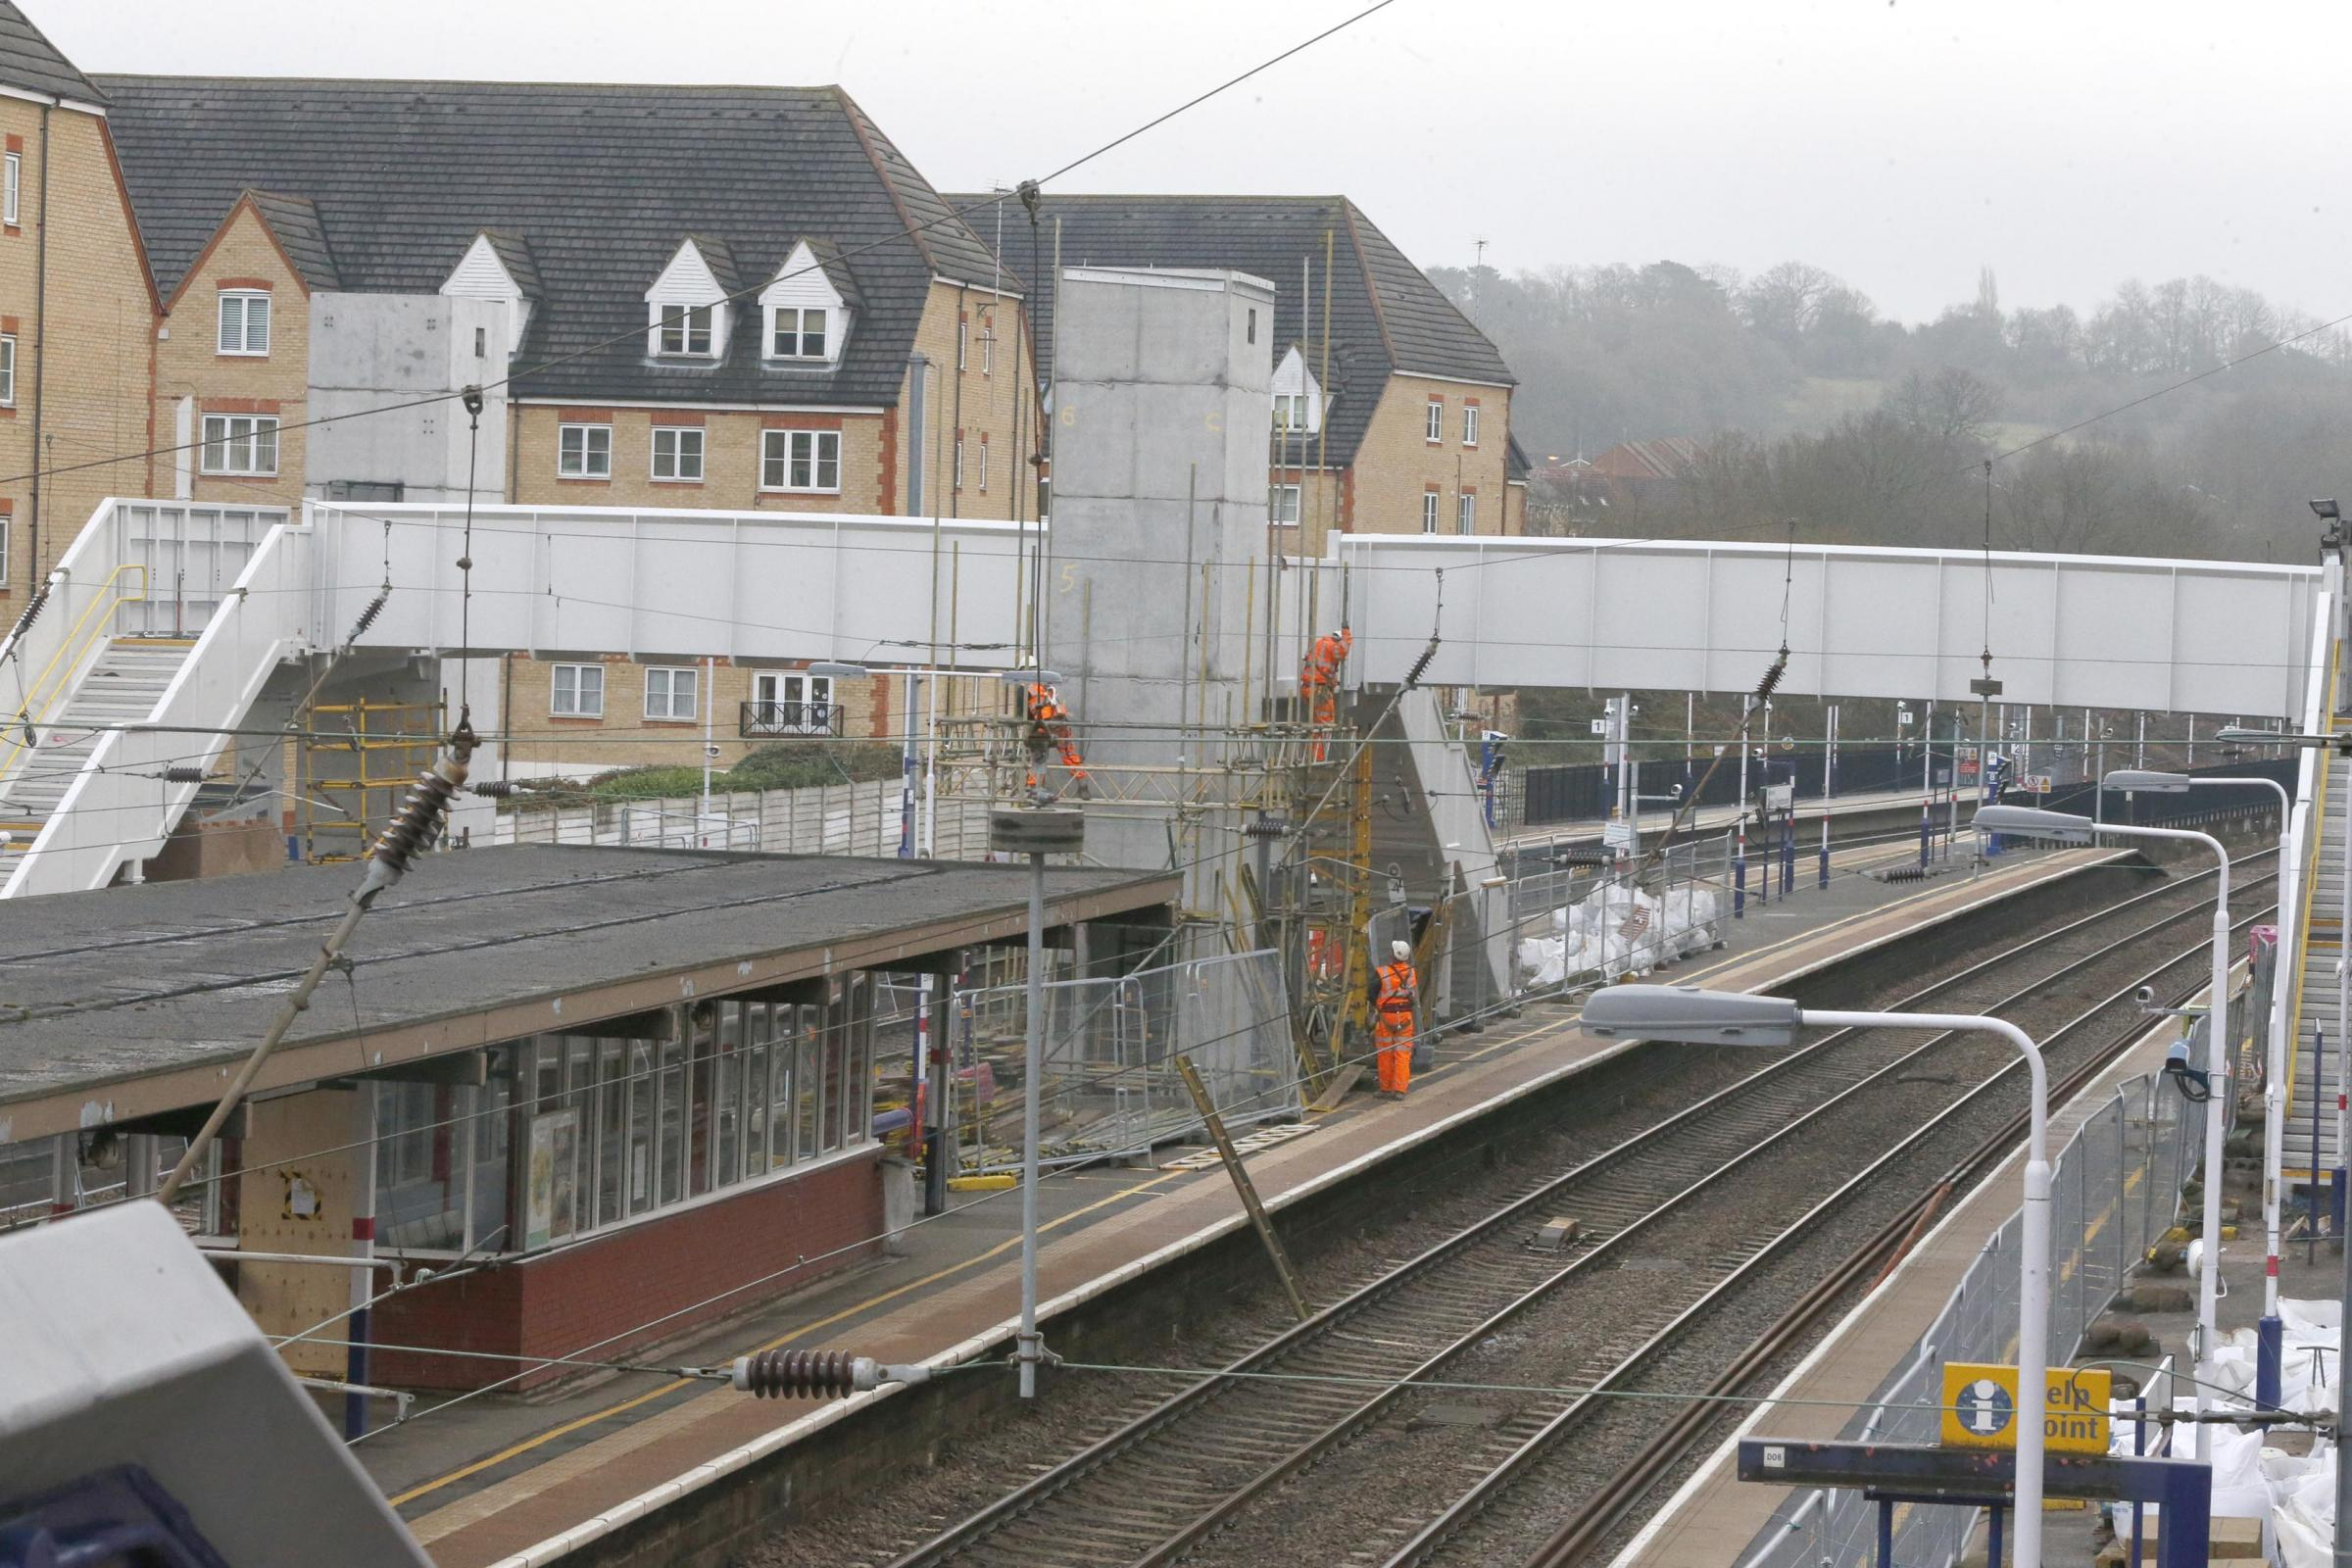 'It is a scandal how long the delays have been' - work at railway station still not finished a year later